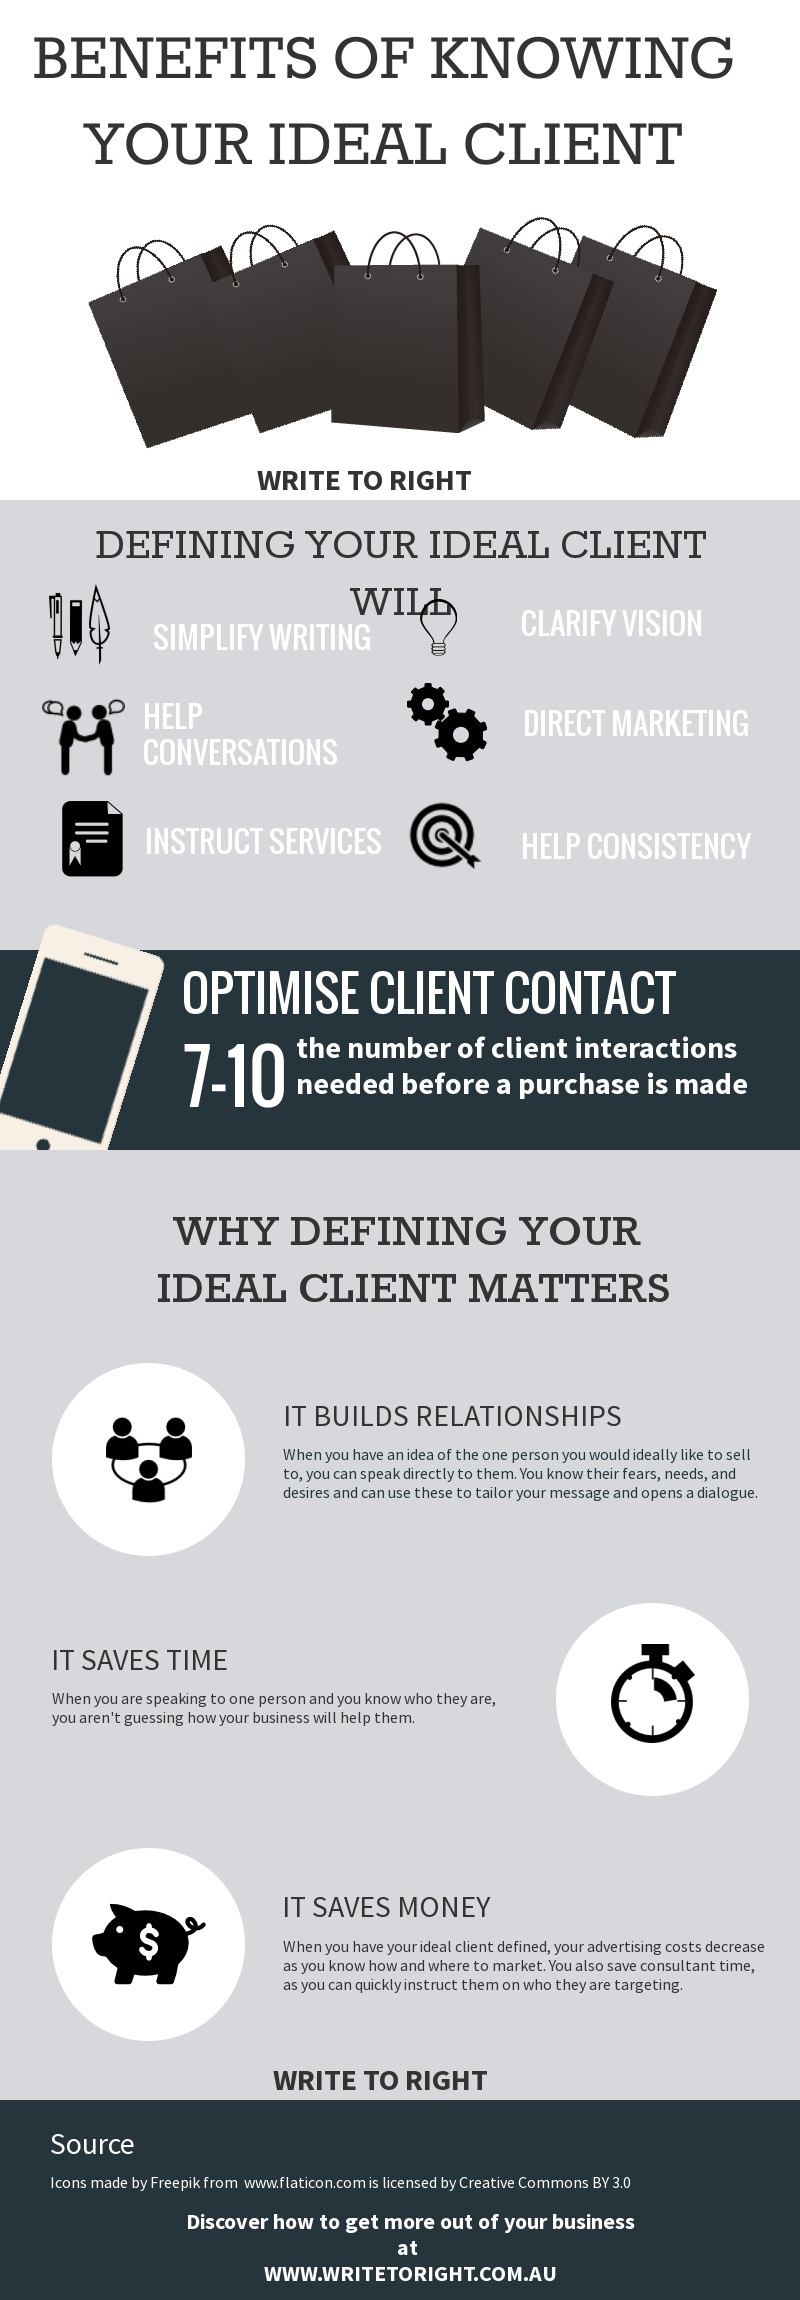 Define Your Ideal Client Avatar